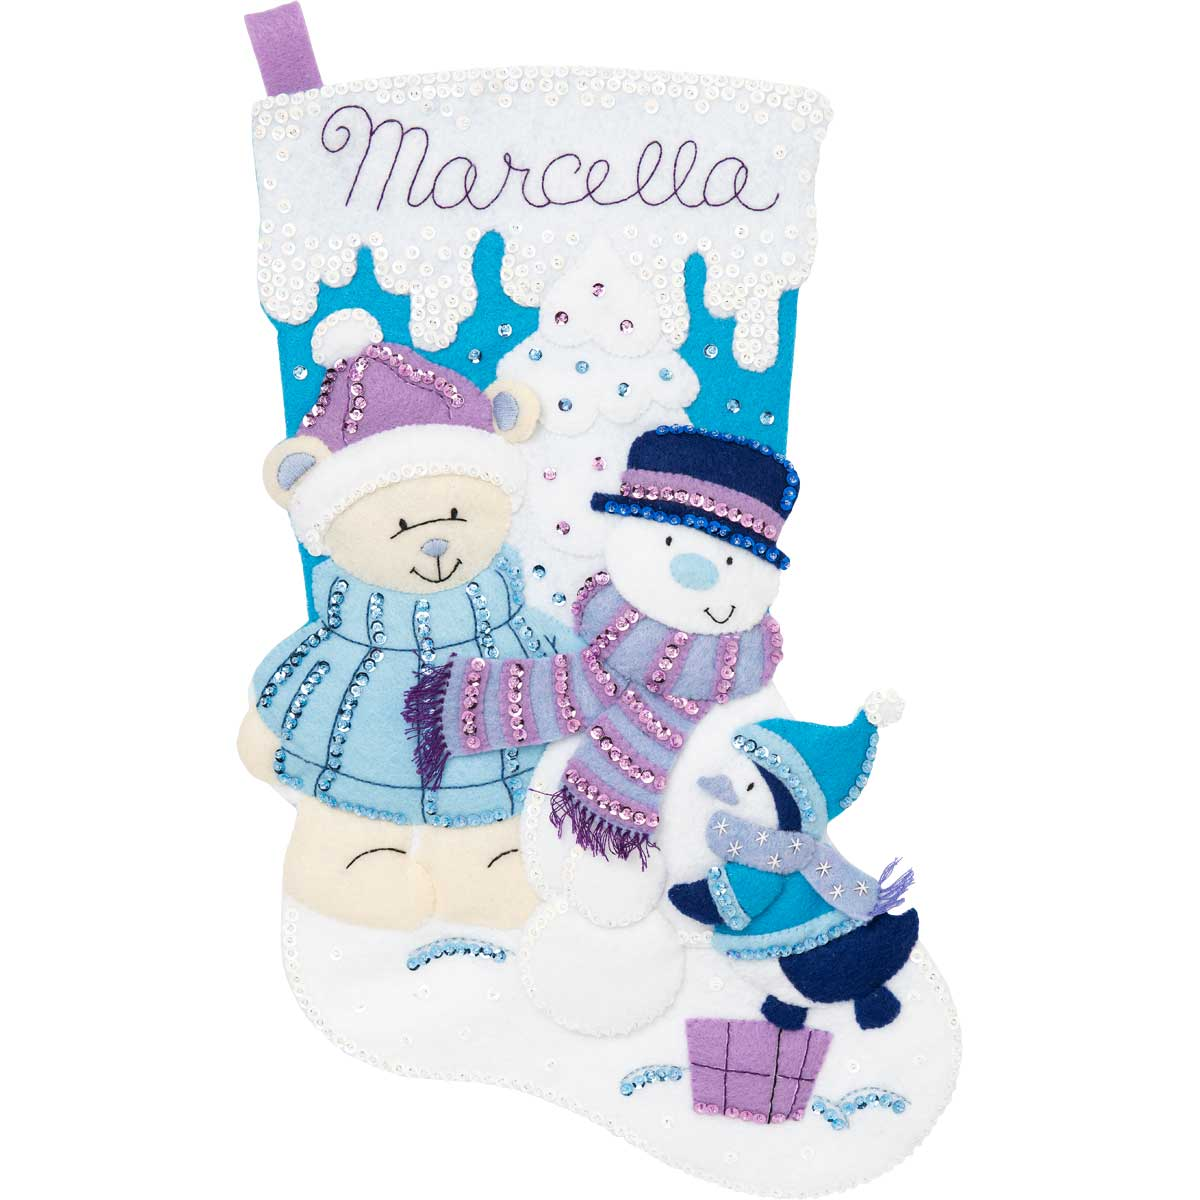 Bucilla ® Seasonal - Felt - Stocking Kits - Hallmark - Wintry Wonderland